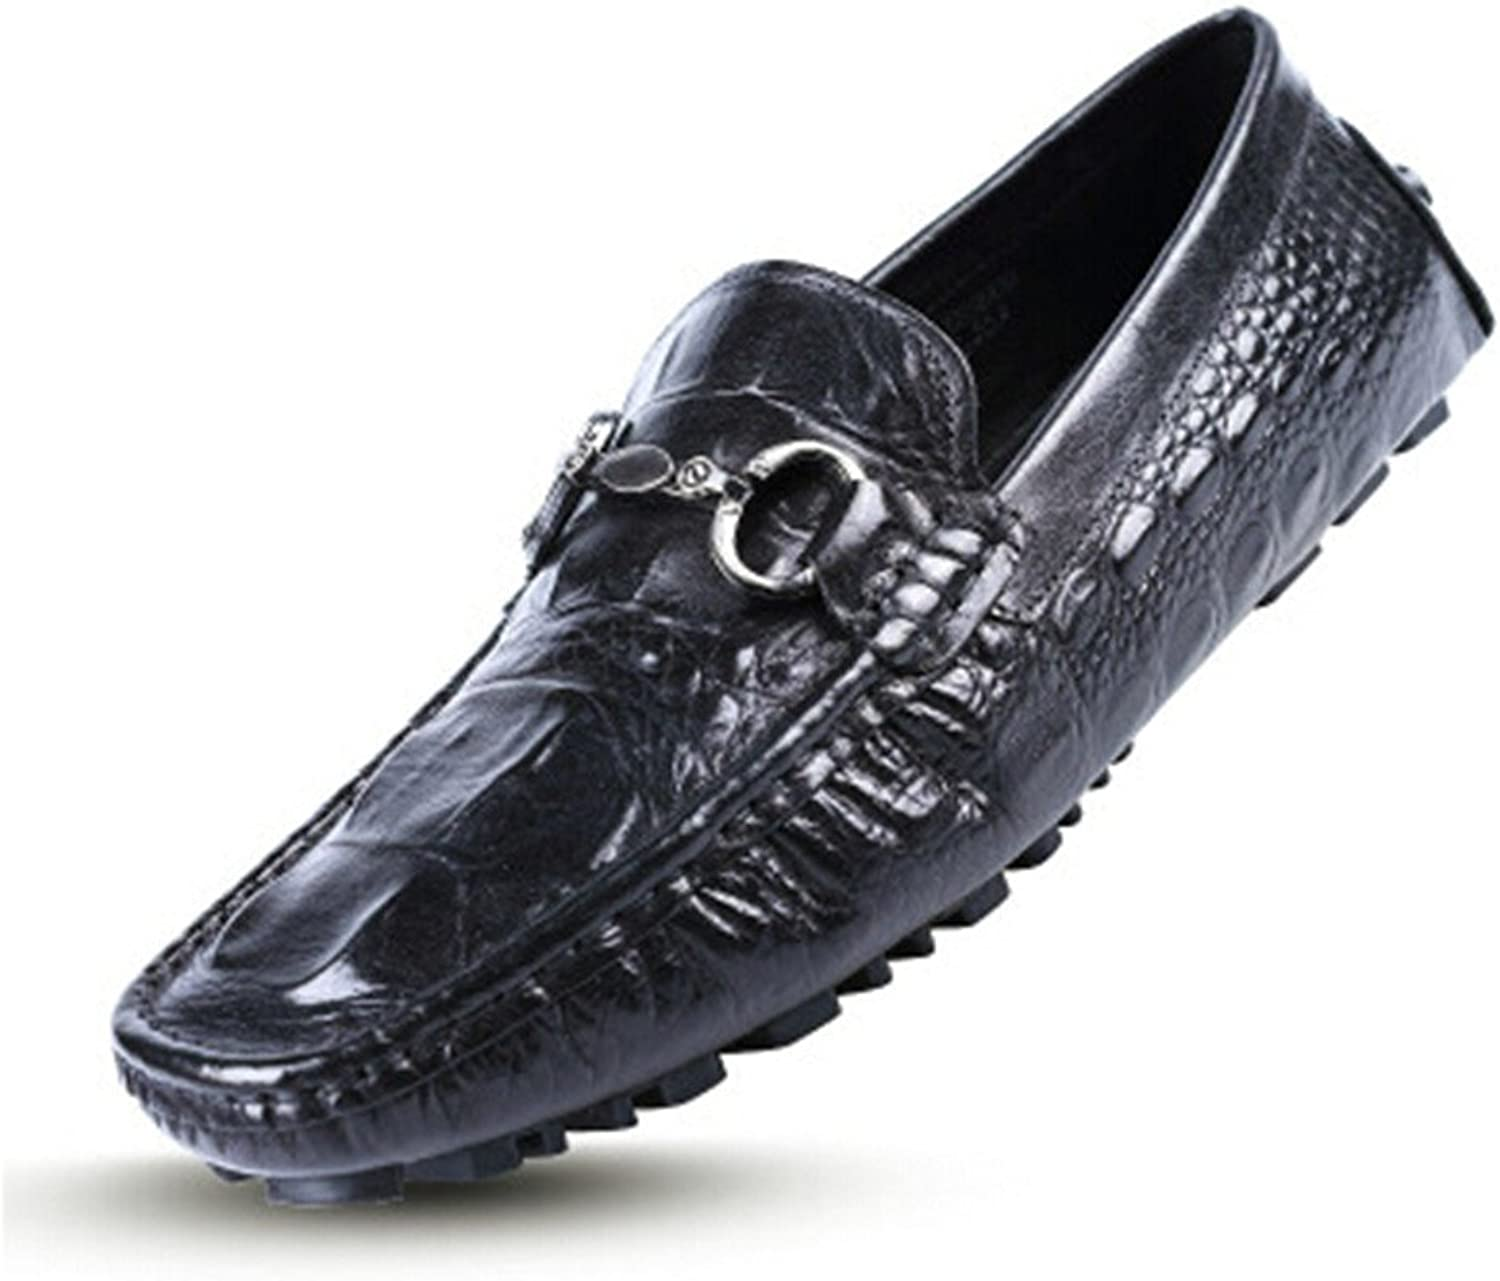 HAPPYSHOP(TM Real Leather Croco Casual Buckle Slip-on Driving Loafer Fashion Mens Boat shoes Just Cavalli